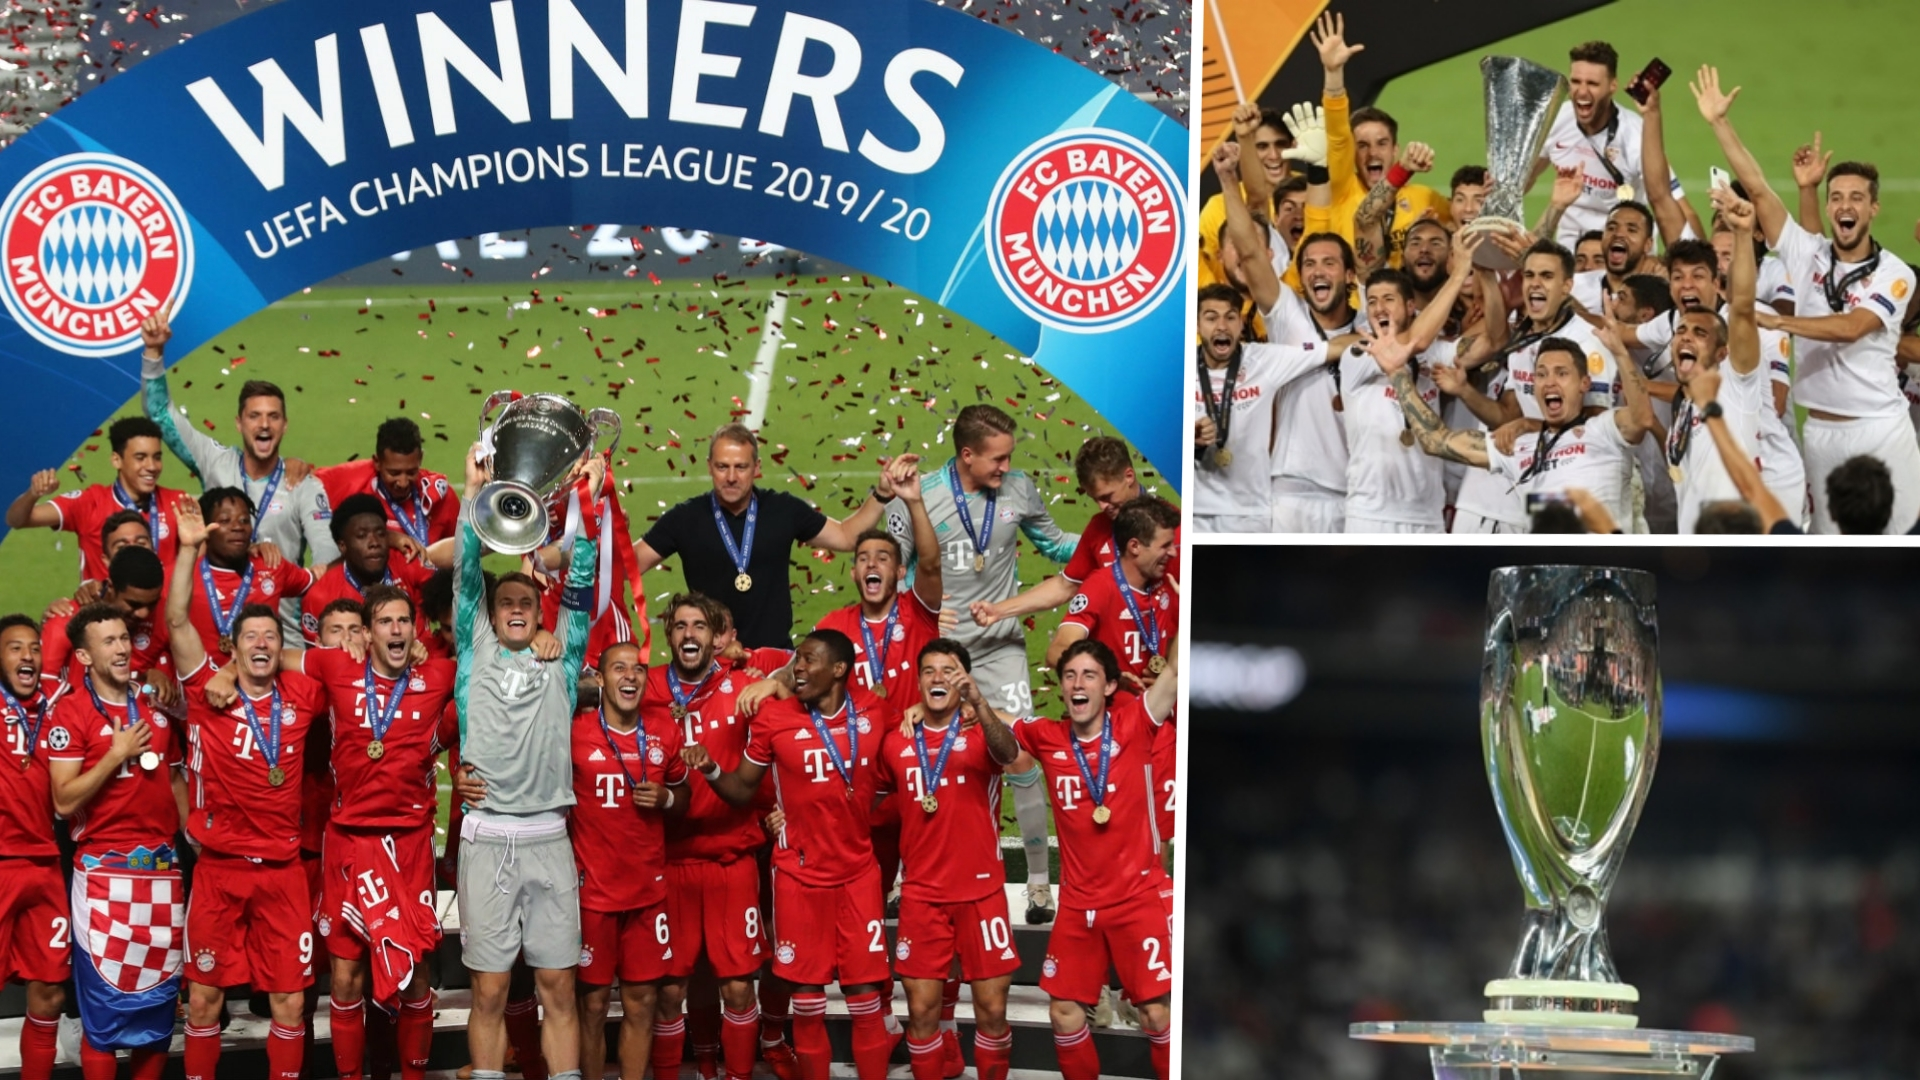 bayern-munich-champions-league-sevilla-europa-league-super-cup-trophy-composite_1ecnfdcl1h4pp1wcq1pkd41l35